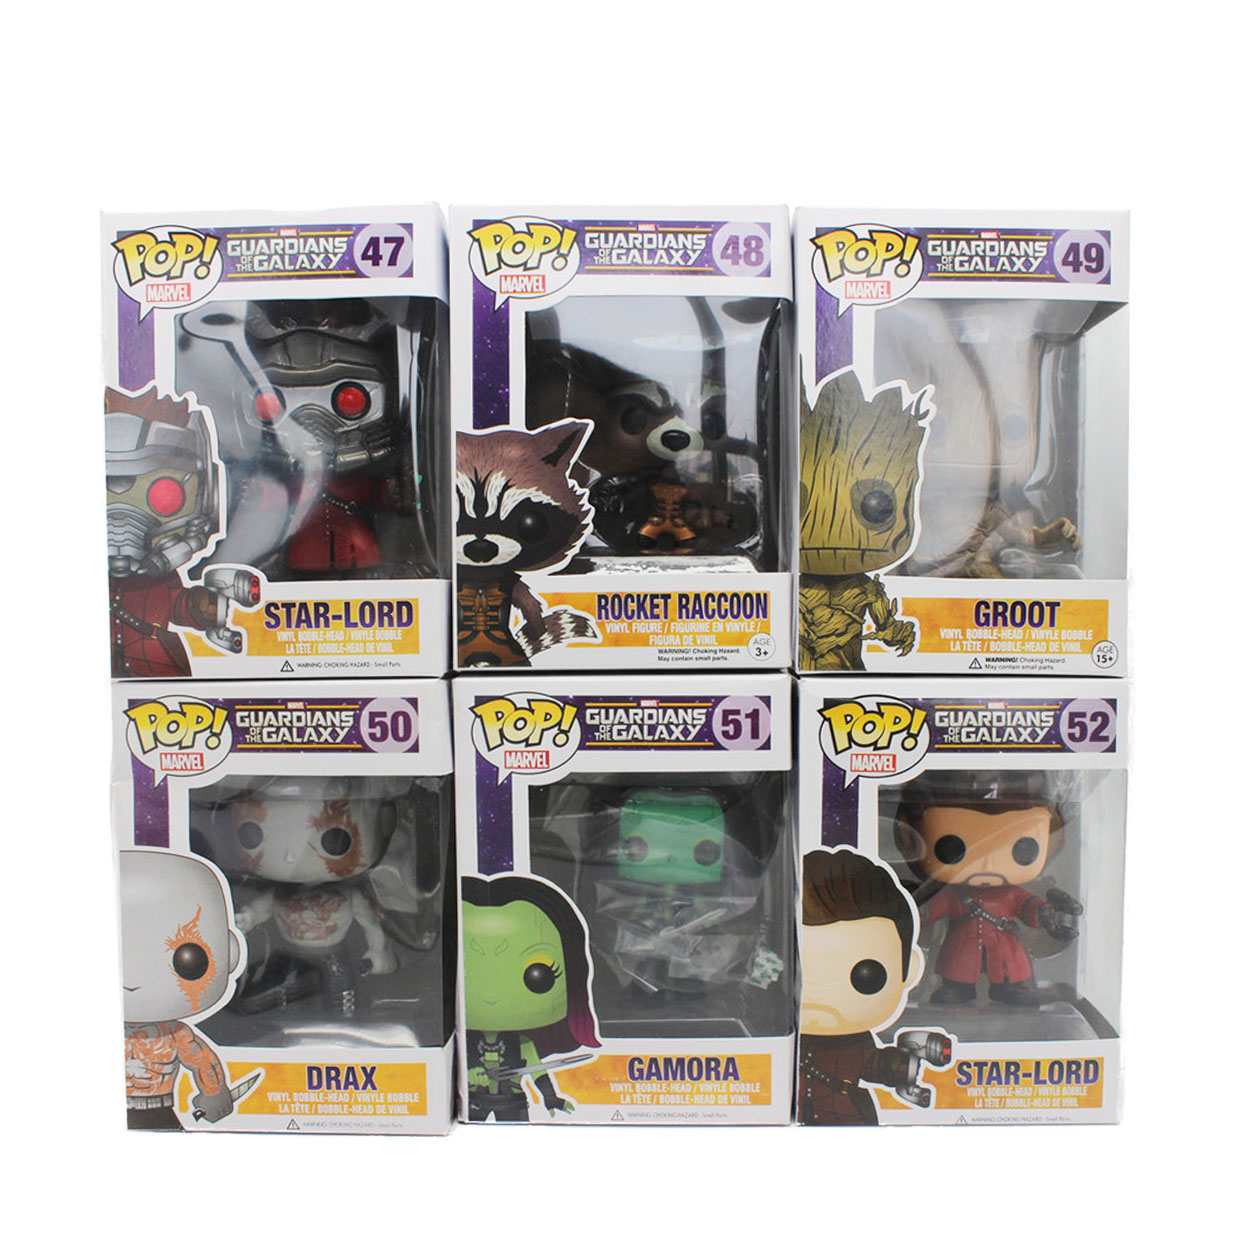 Funko <font><b>Pop</b></font> Bobble Head Groot Star-Lord <font><b>Rocket</b></font> <font><b>Raccoon</b></font> Drax Gamora Tree man <font><b>Guardians</b></font> <font><b>of</b></font> <font><b>the</b></font> <font><b>Galaxy</b></font> Anime Movie <font><b>Vinyl</b></font> PVC model